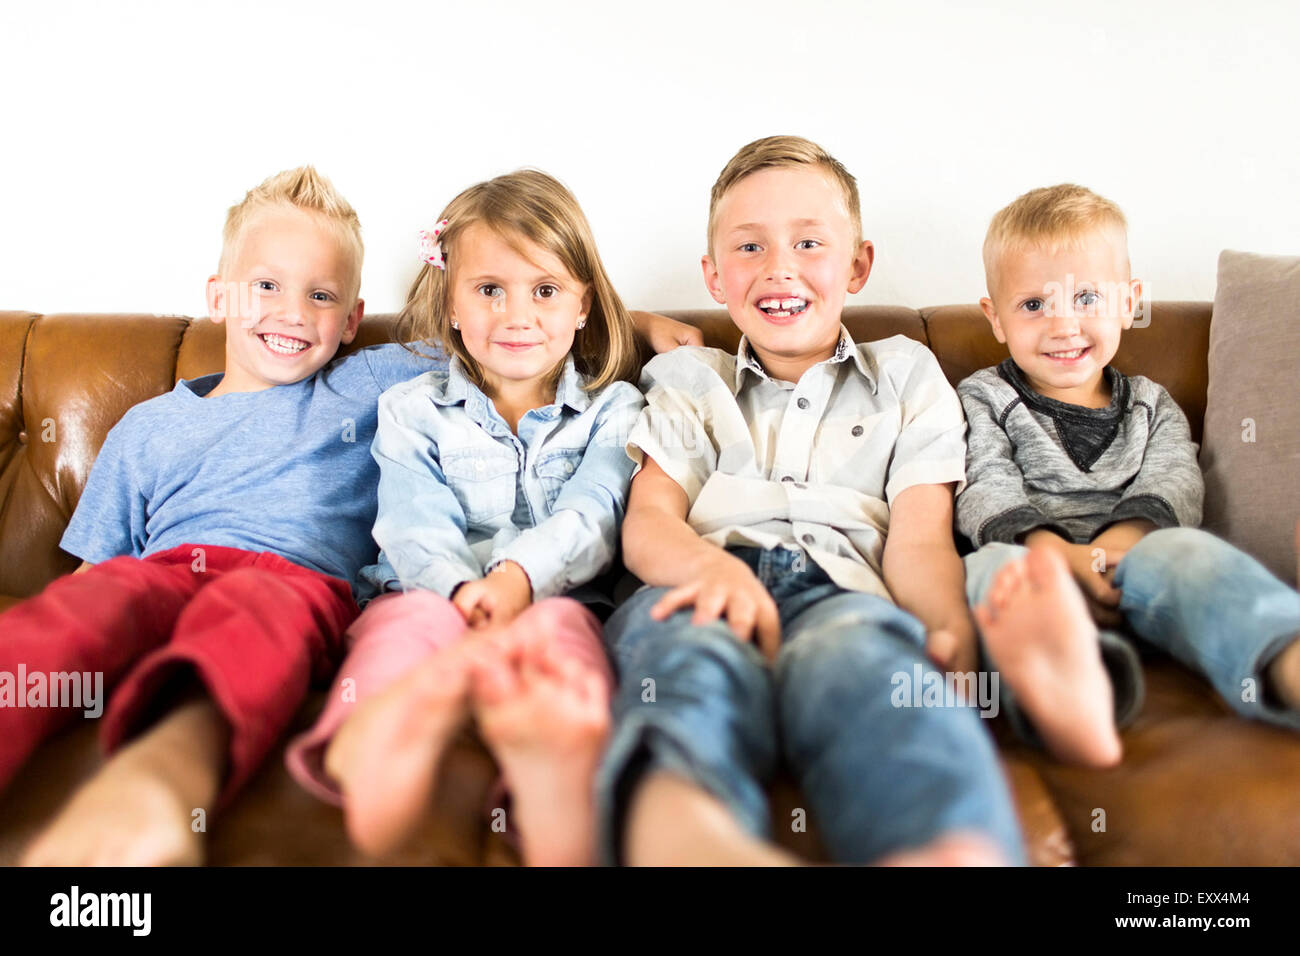 Smiling Children (2-3, 4-5, 6-7) sitting on sofa Photo Stock